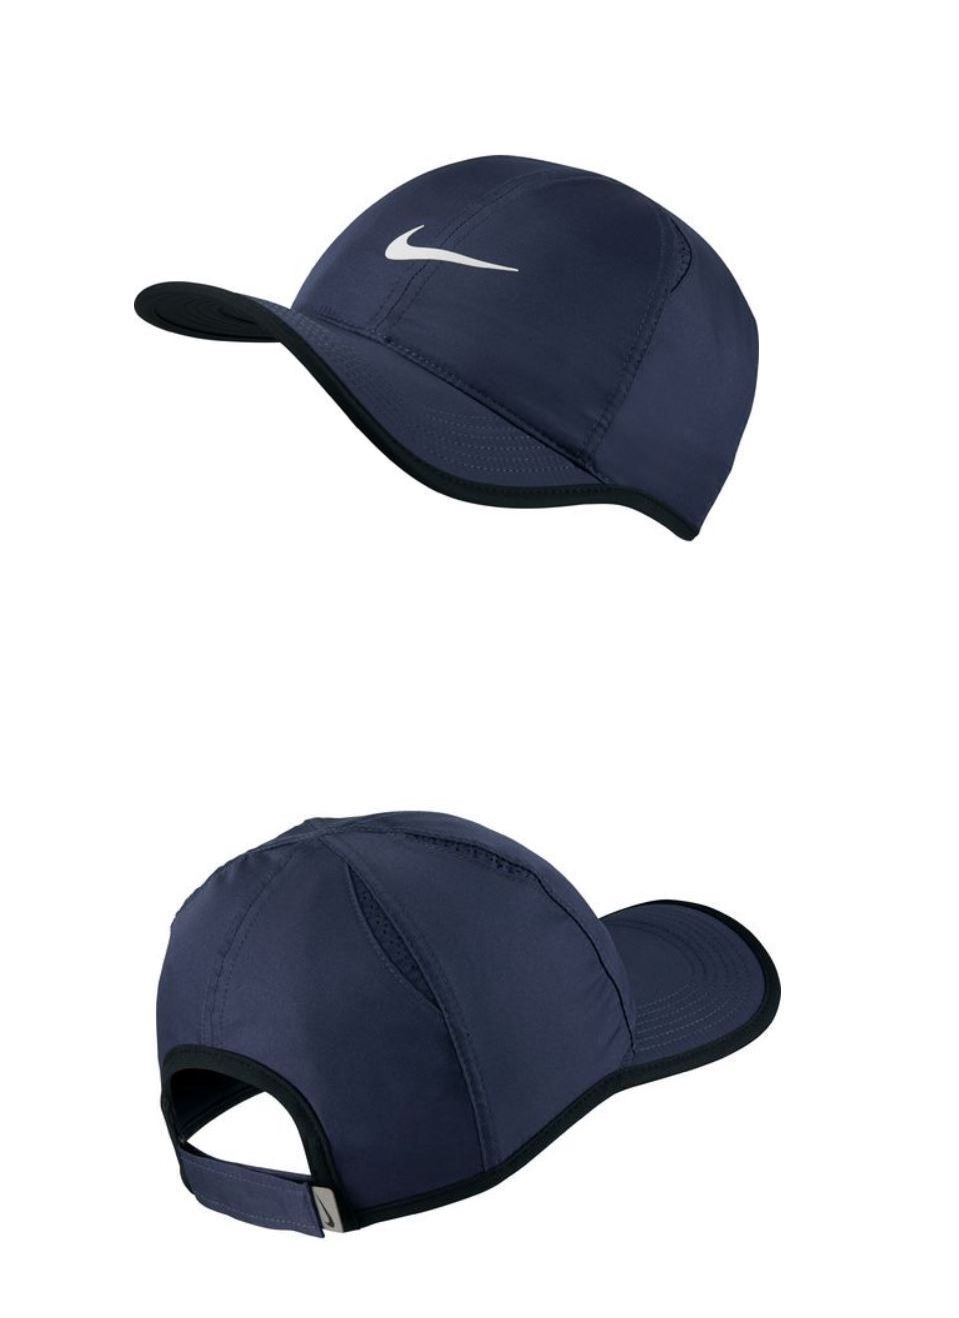 ebb8231f37d Clothing 70898  Nike Men S Featherlight Hat Blue White Black Swoosh Adjustable  Cap 679421 New -  BUY IT NOW ONLY   21.95 on eBay!